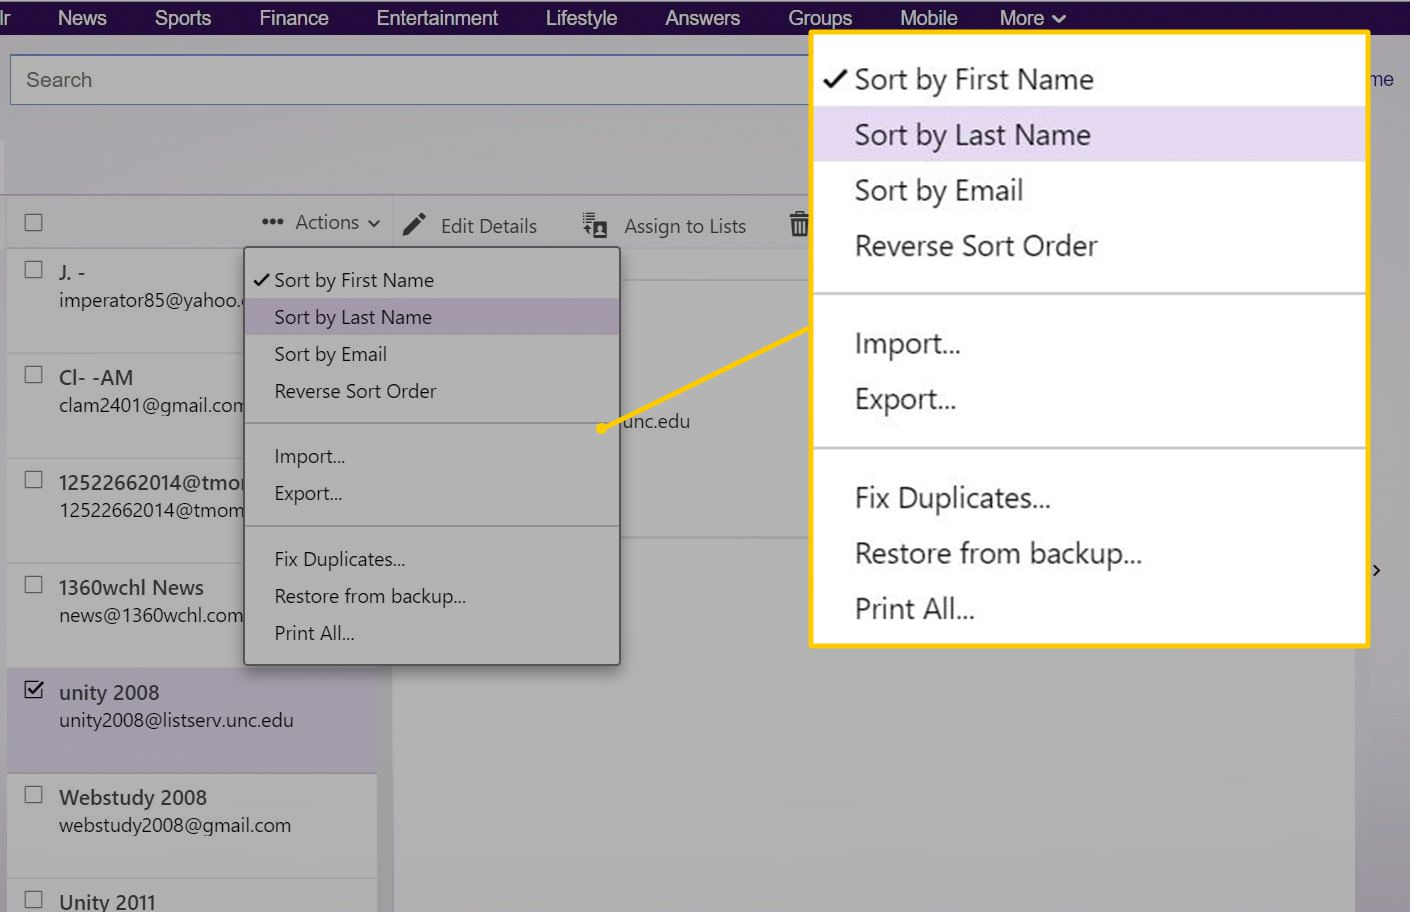 How to Add Contacts Automatically in Yahoo Mail